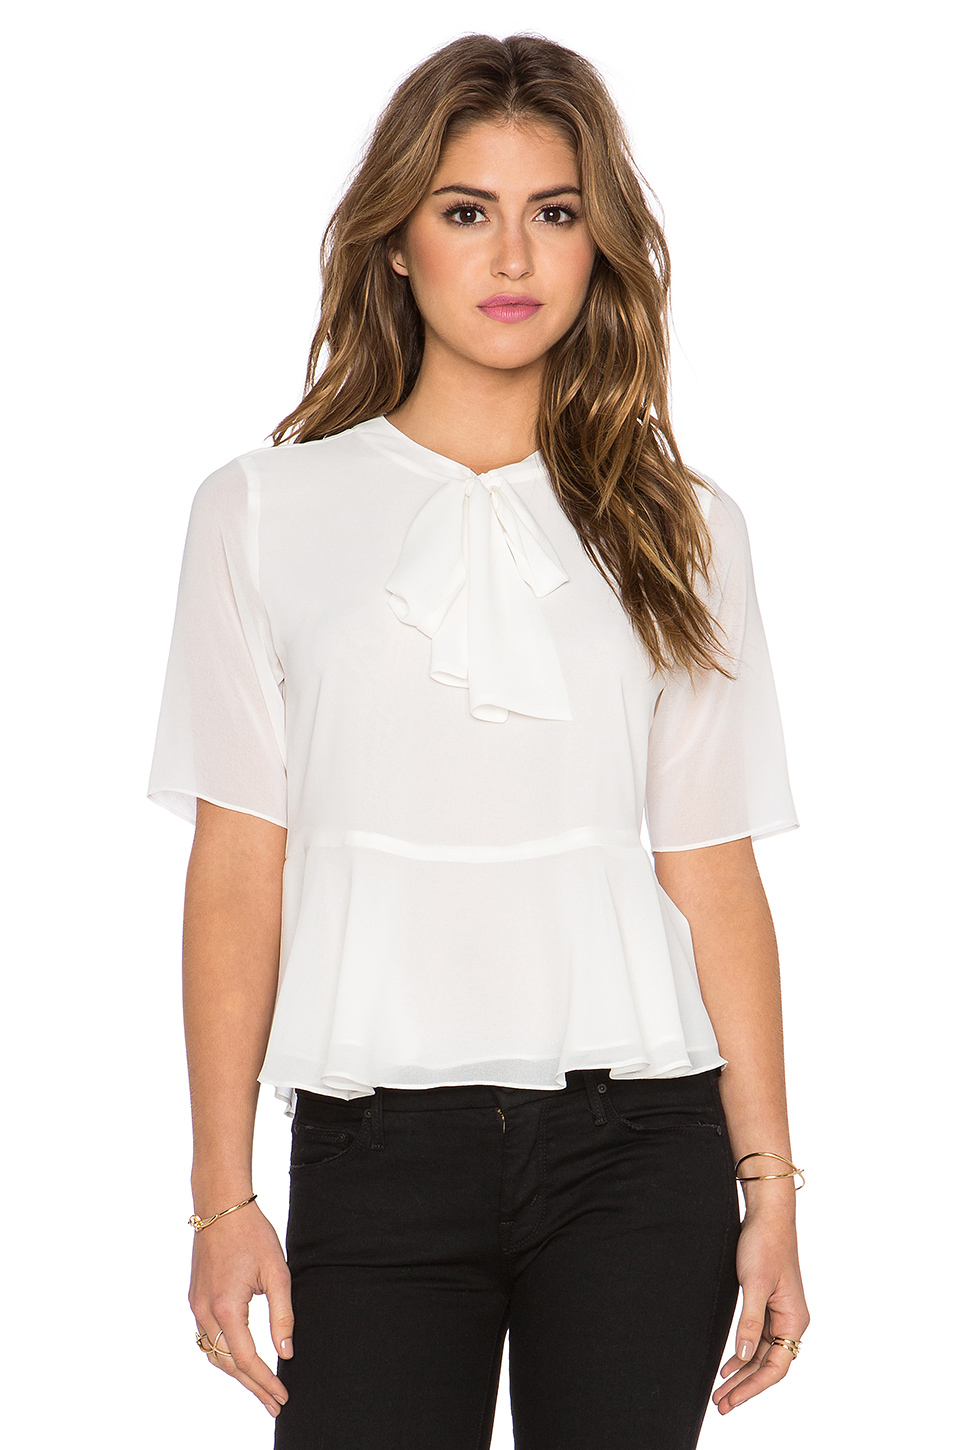 White Ruffle Neck Blouse 31